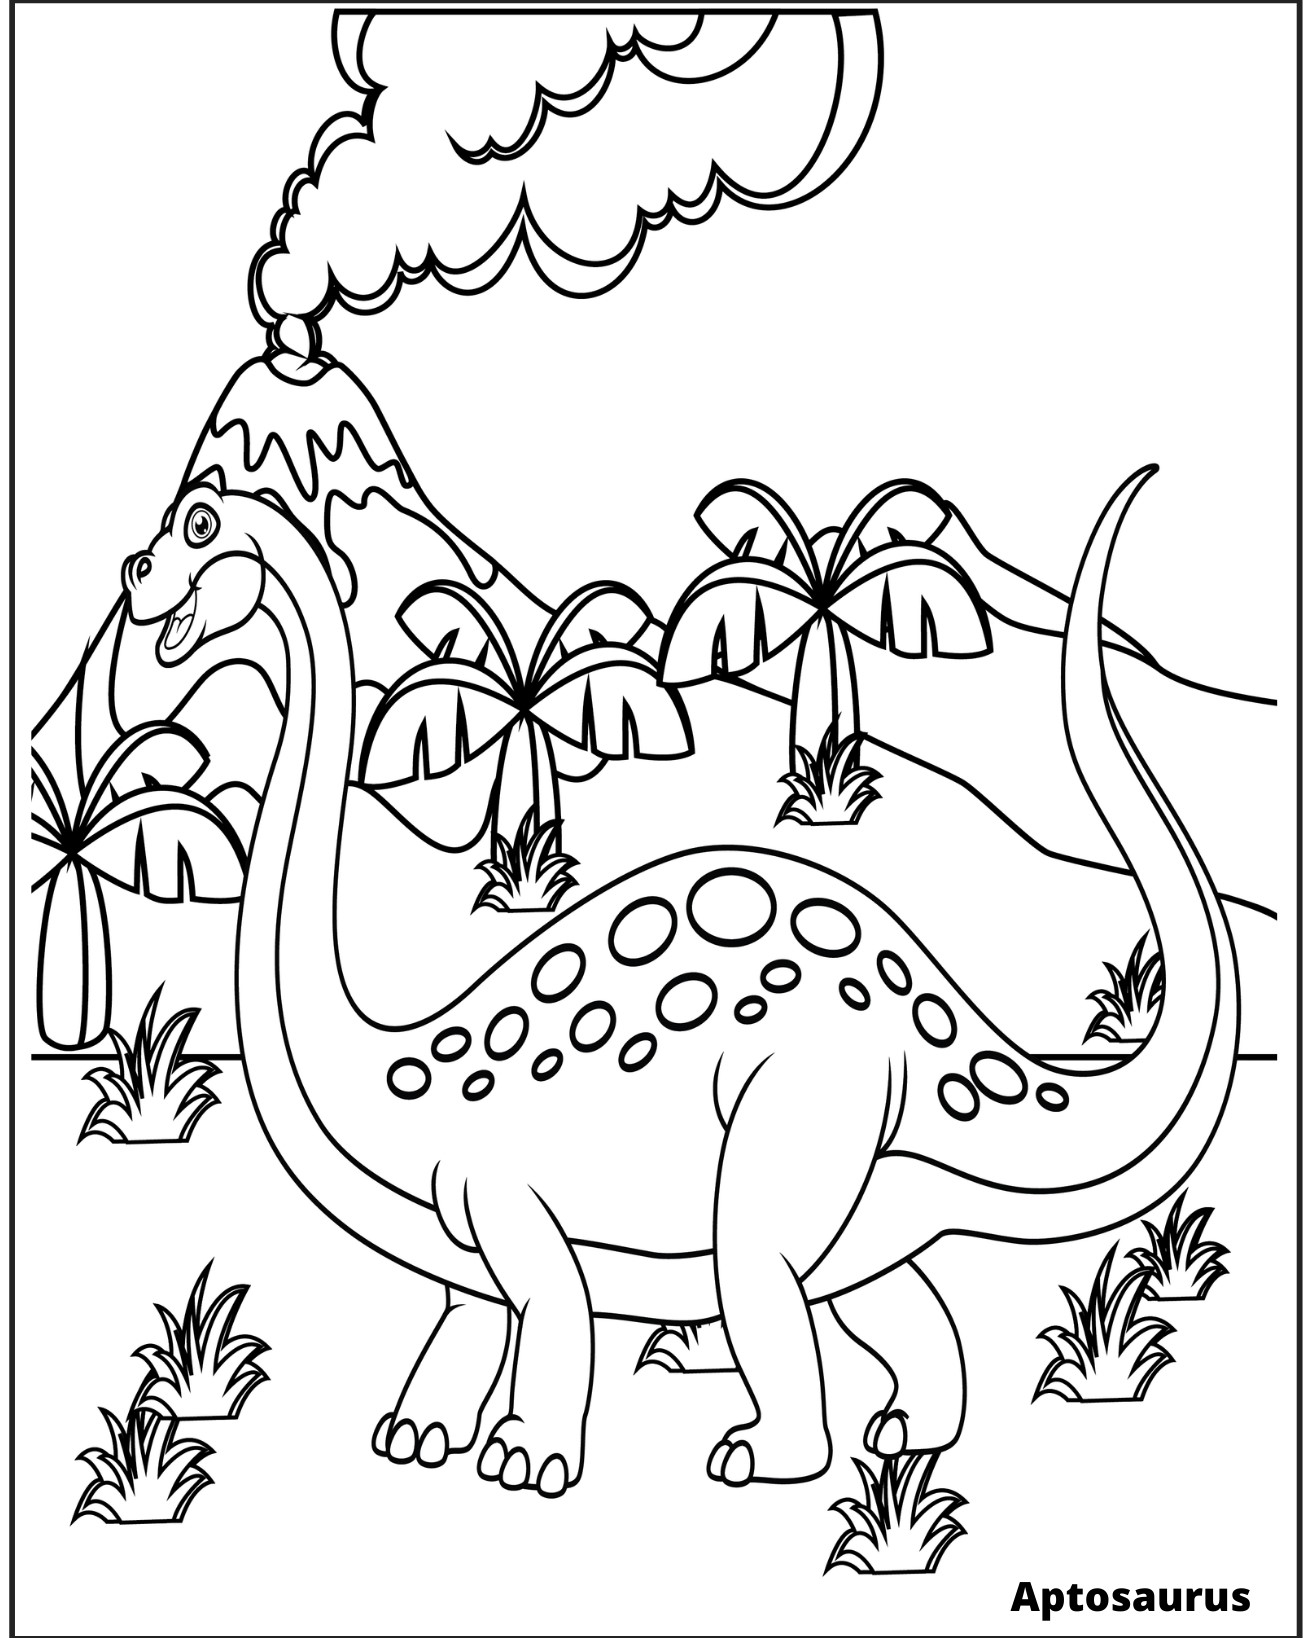 Volcano is actived Coloring Page